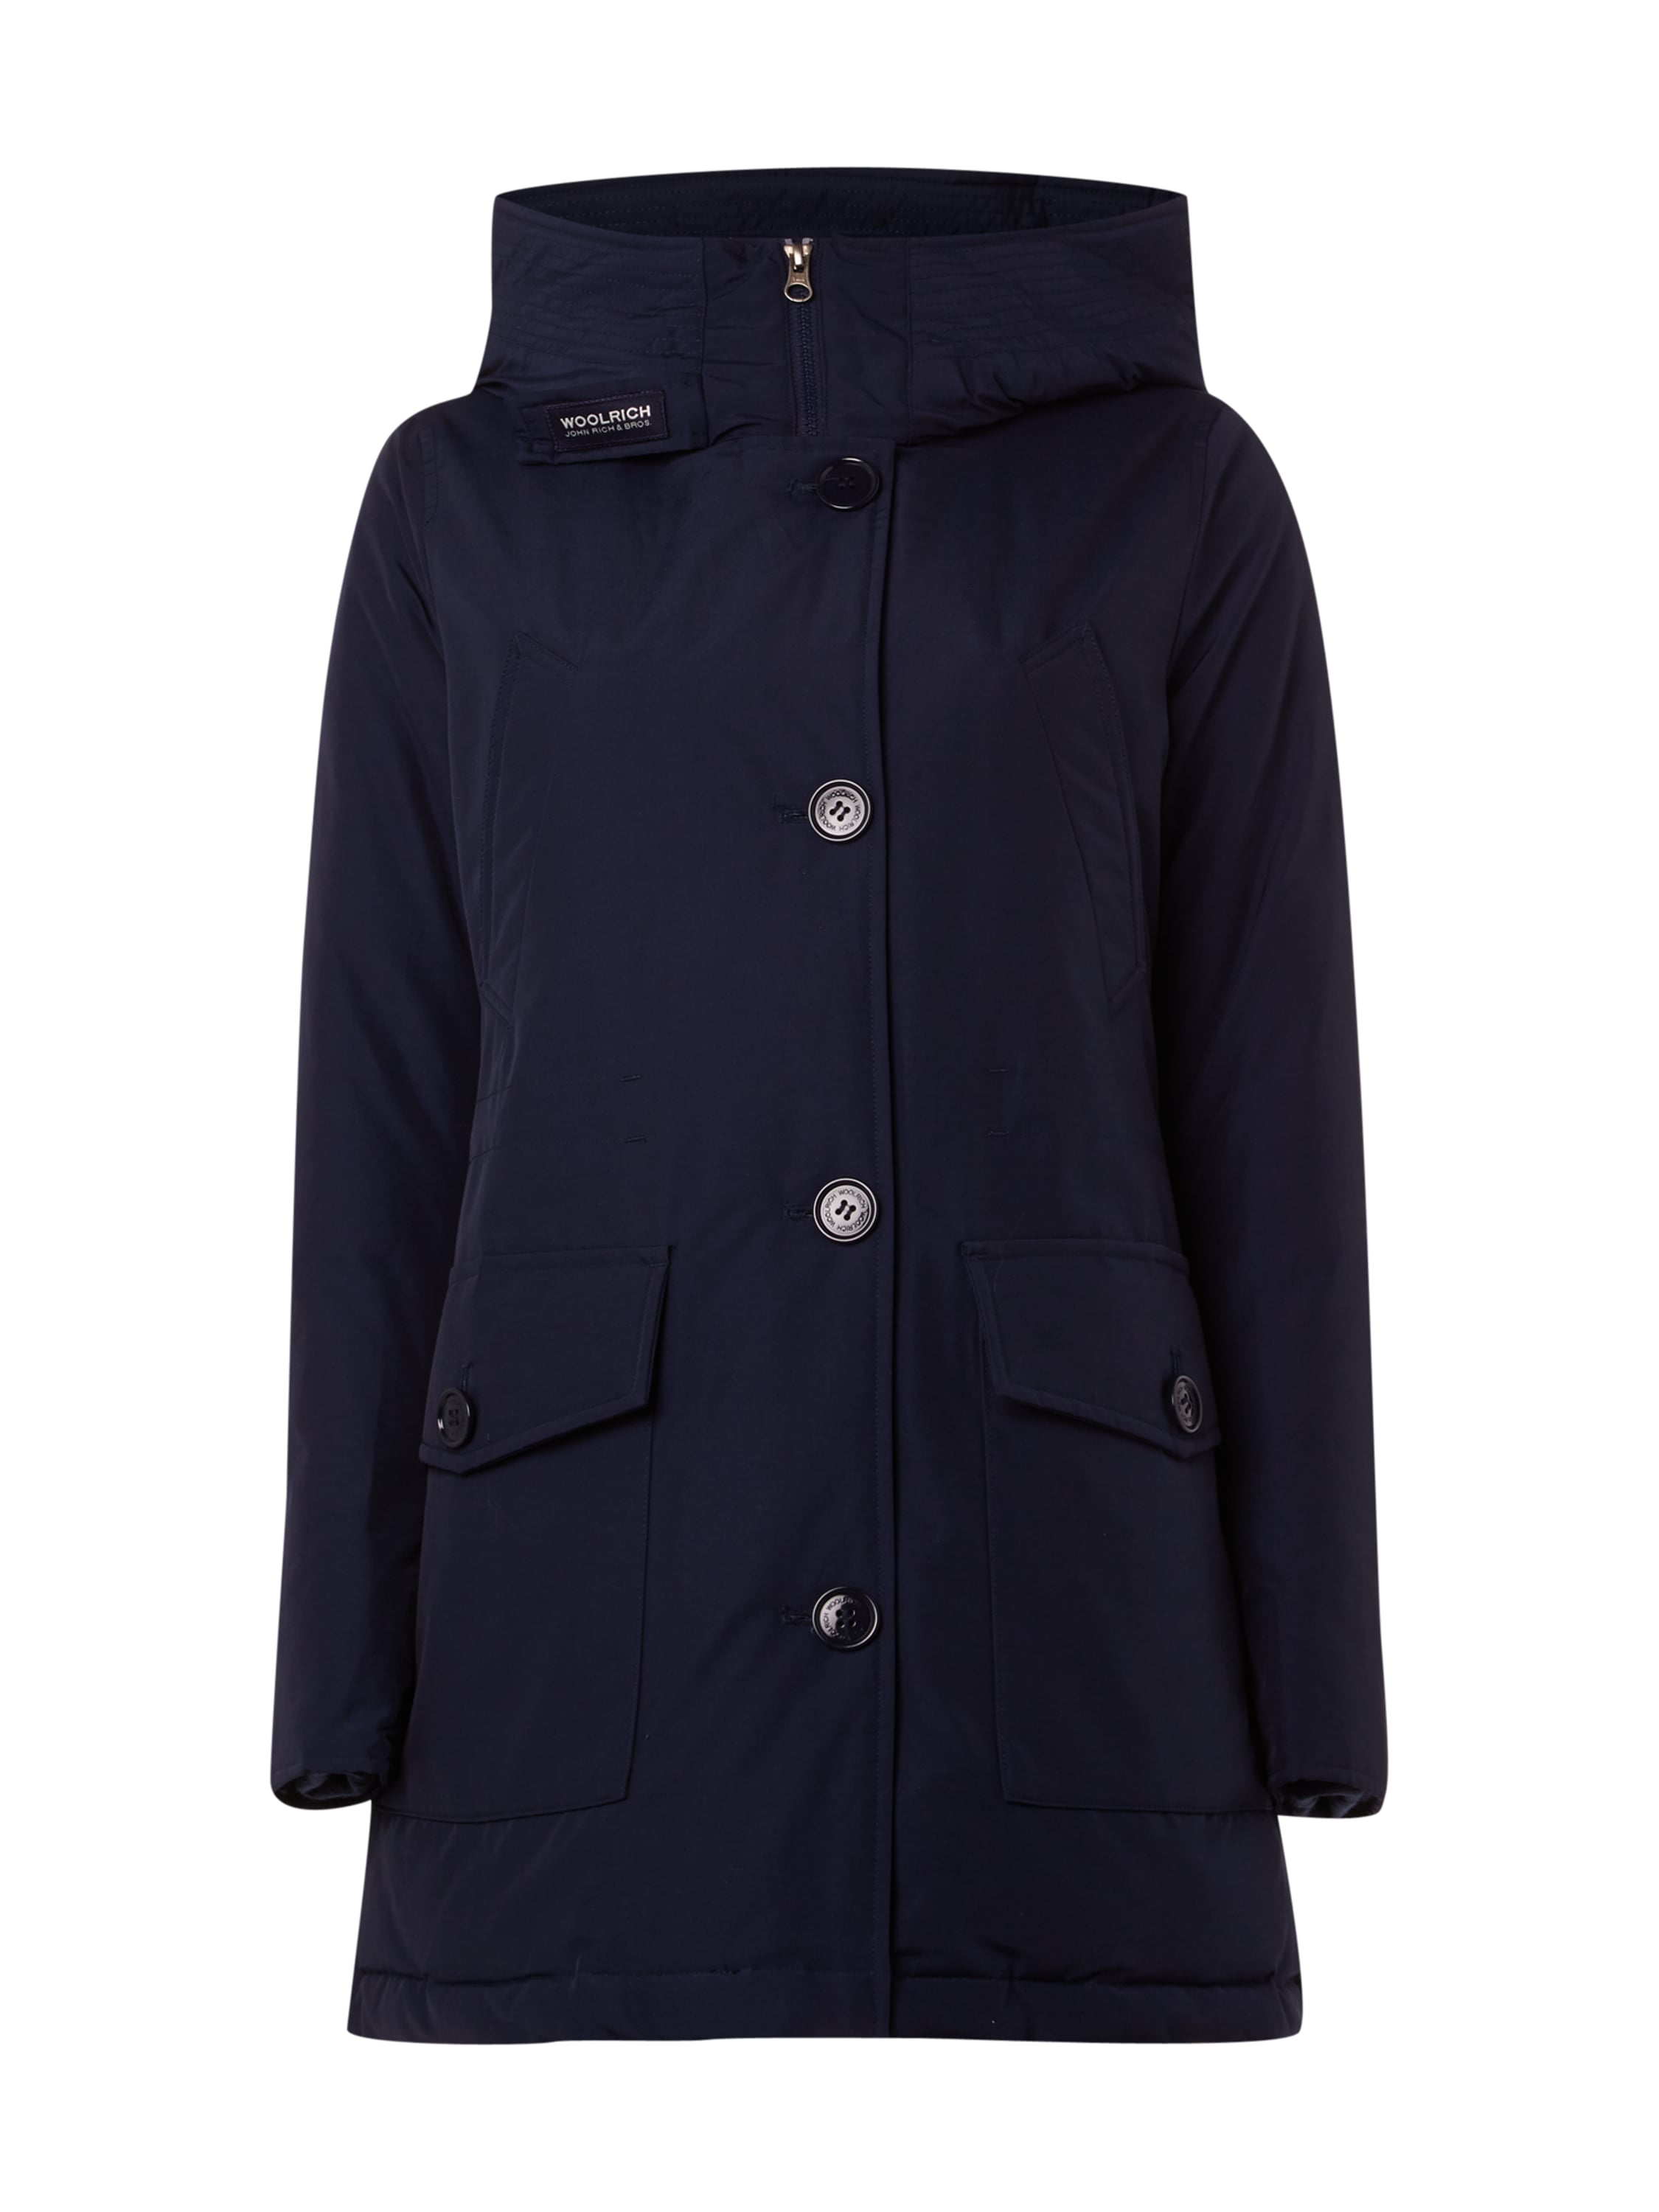 woolrich parka mit daunen federn f llung in blau t rkis online kaufen 9492457 p c at. Black Bedroom Furniture Sets. Home Design Ideas